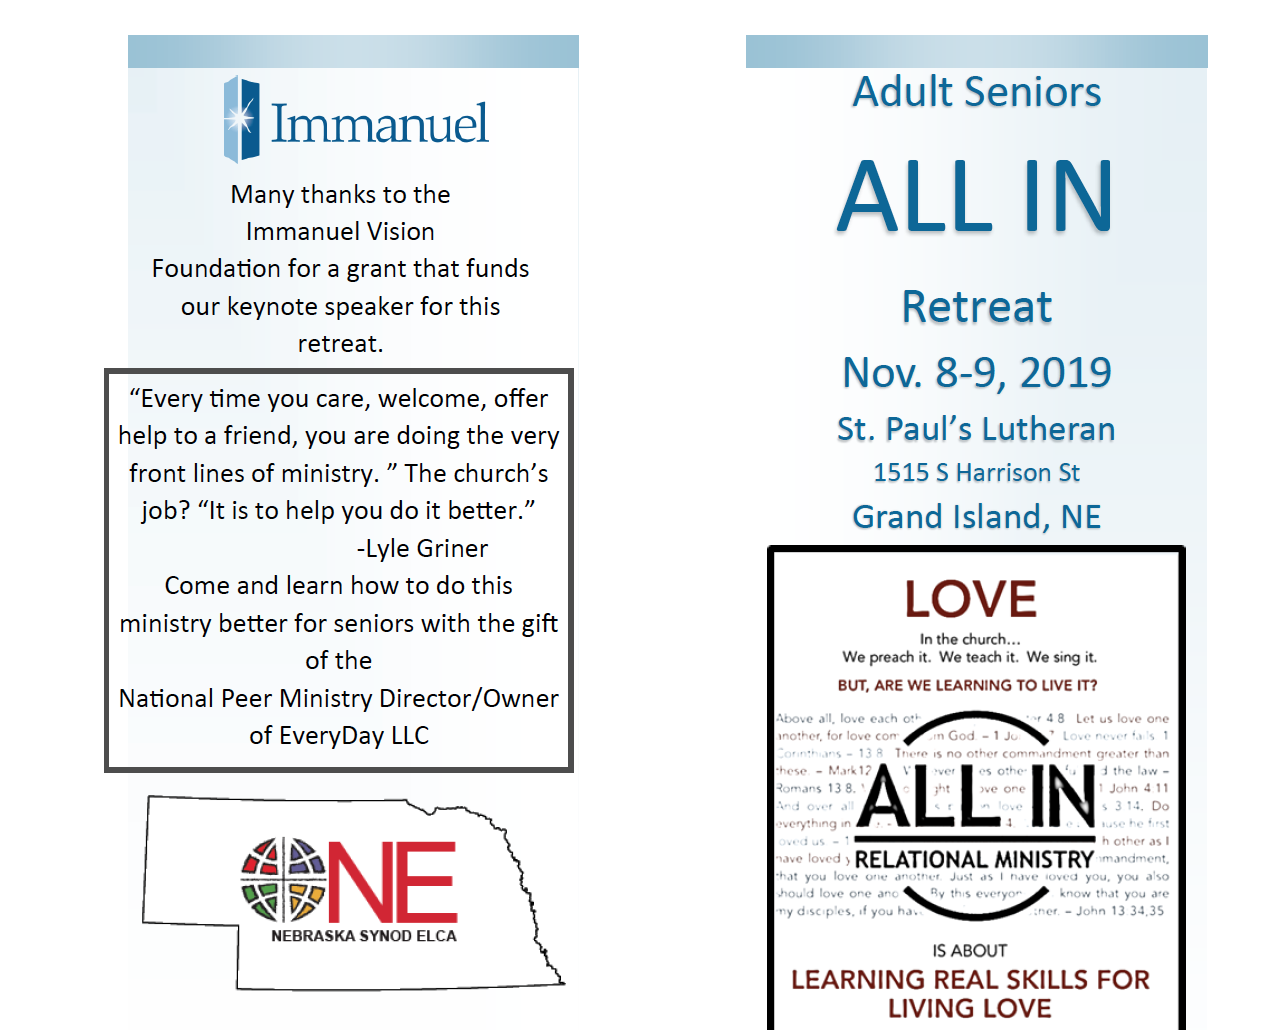 Seniors All In: A retreat for building senior ministry